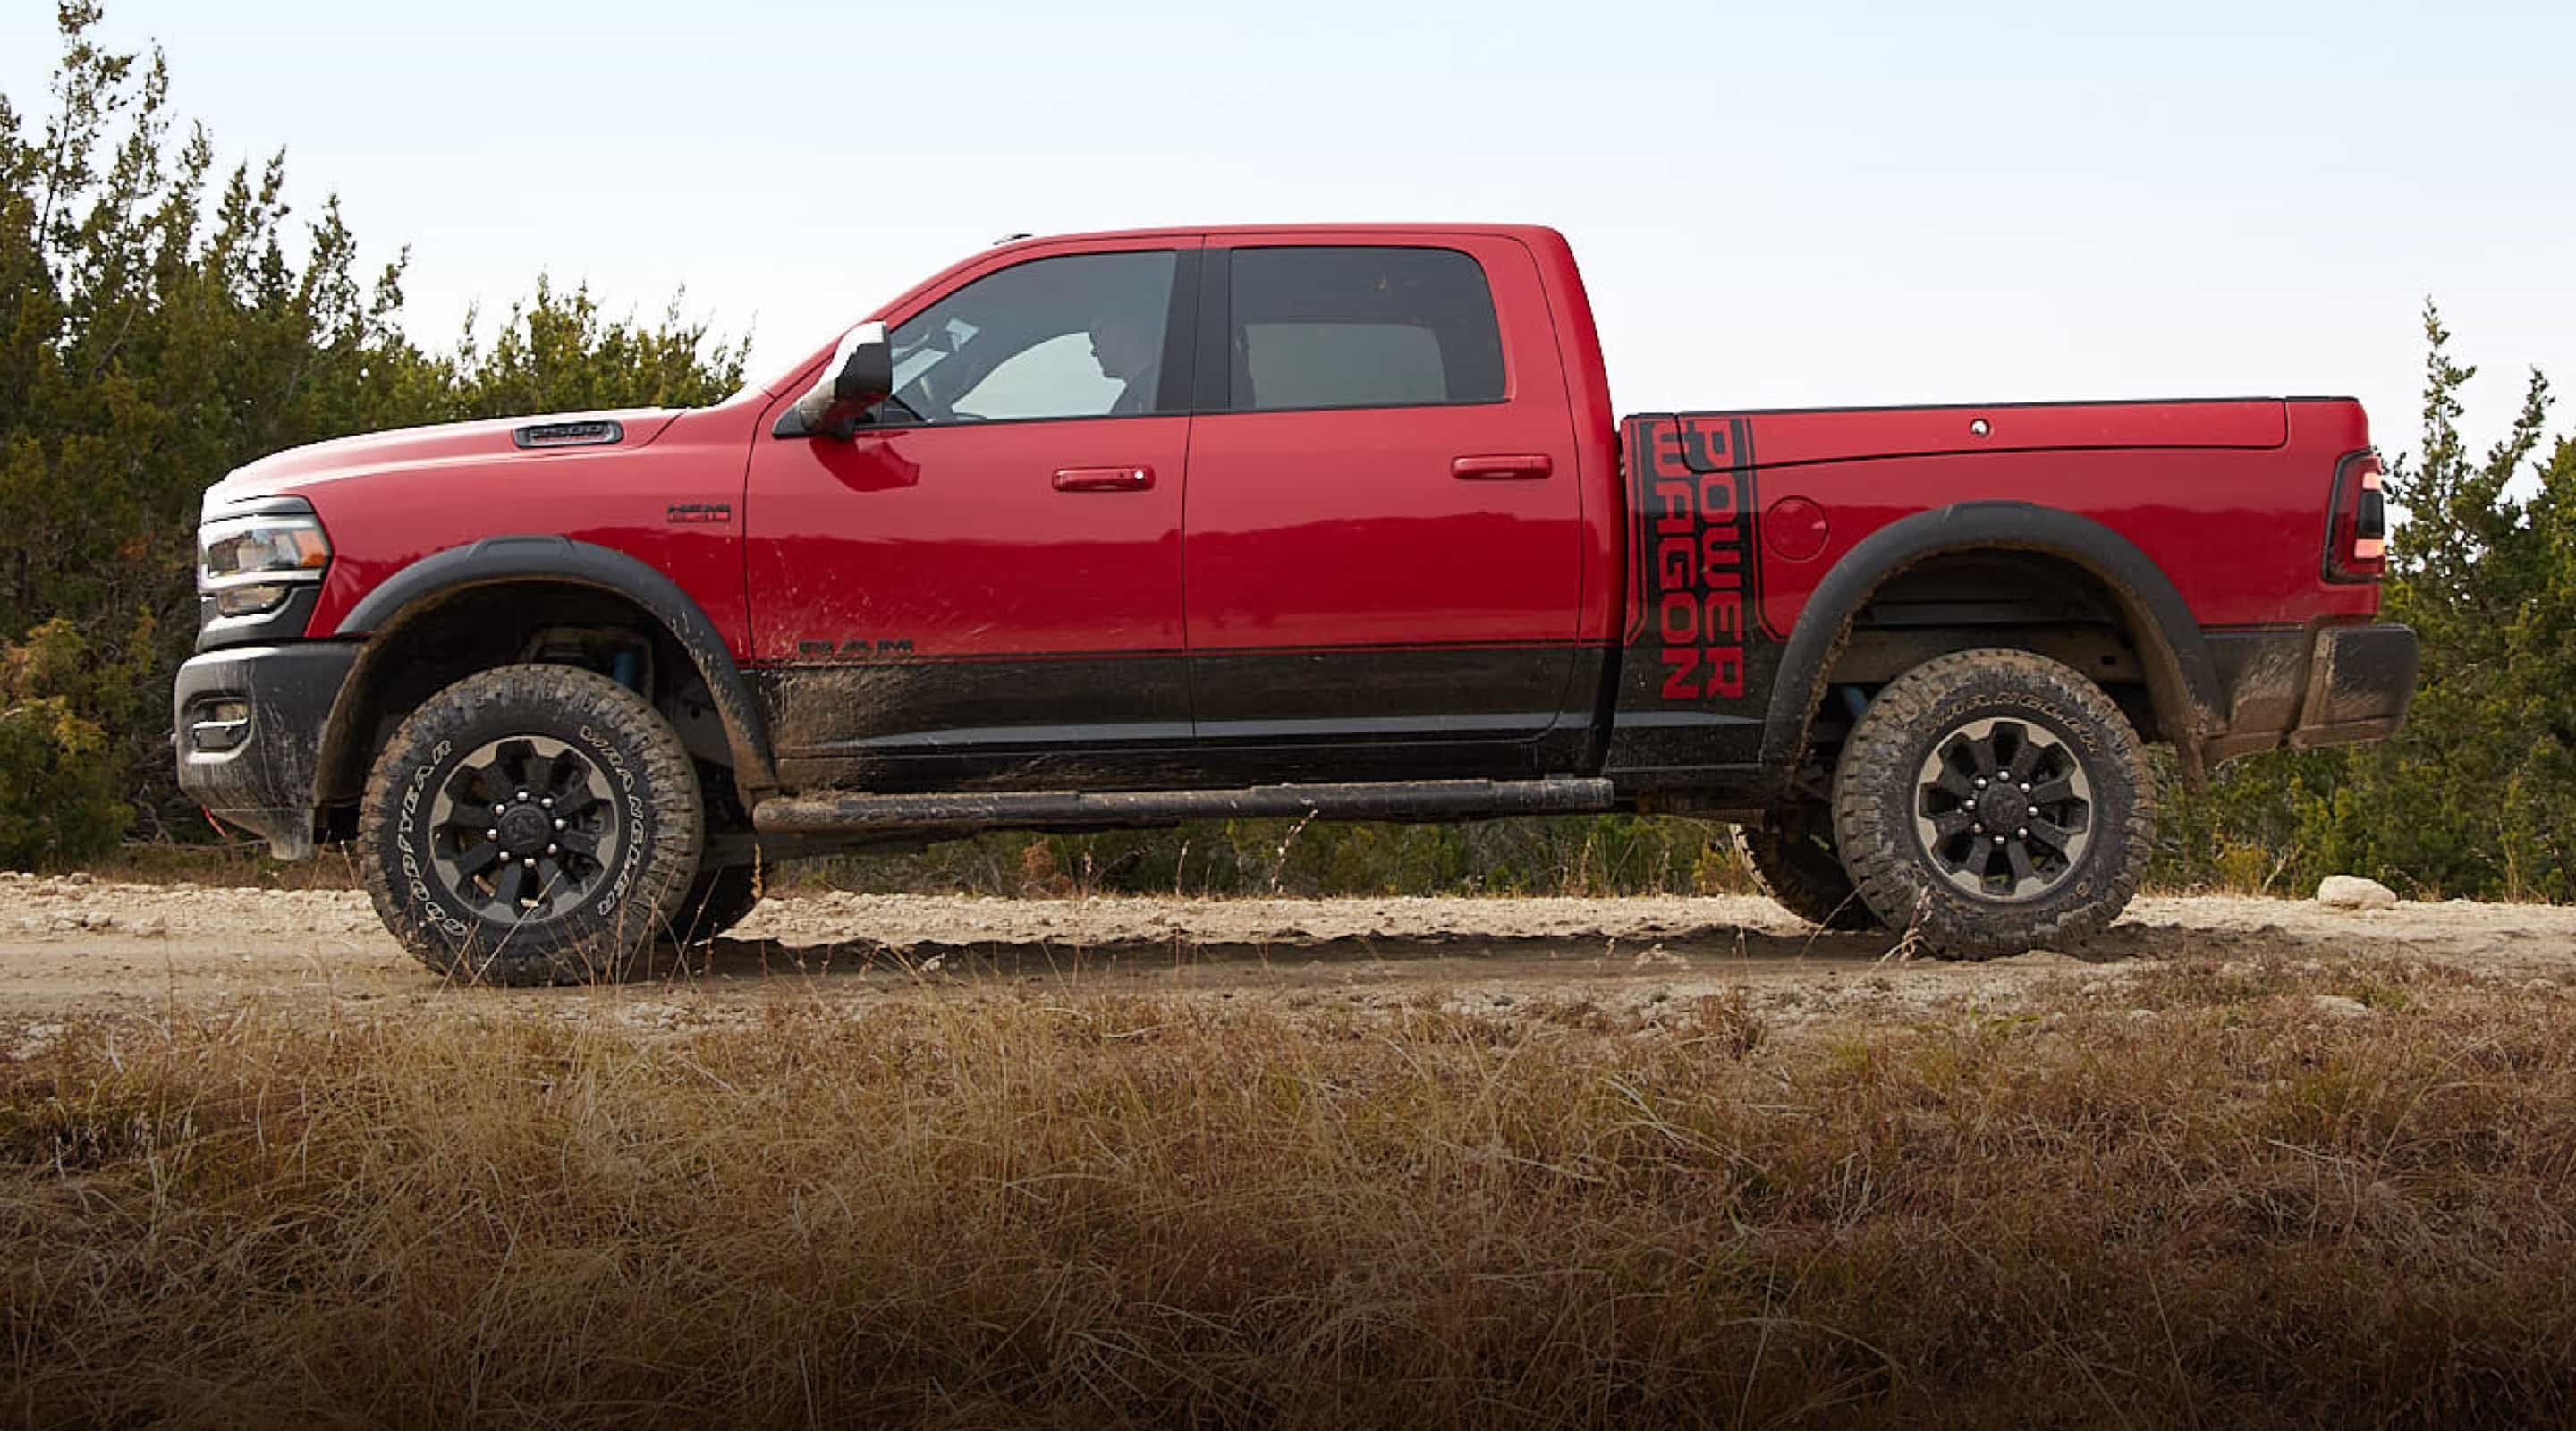 2020 Ram Trucks 2500 Heavy Duty Pickup Truck